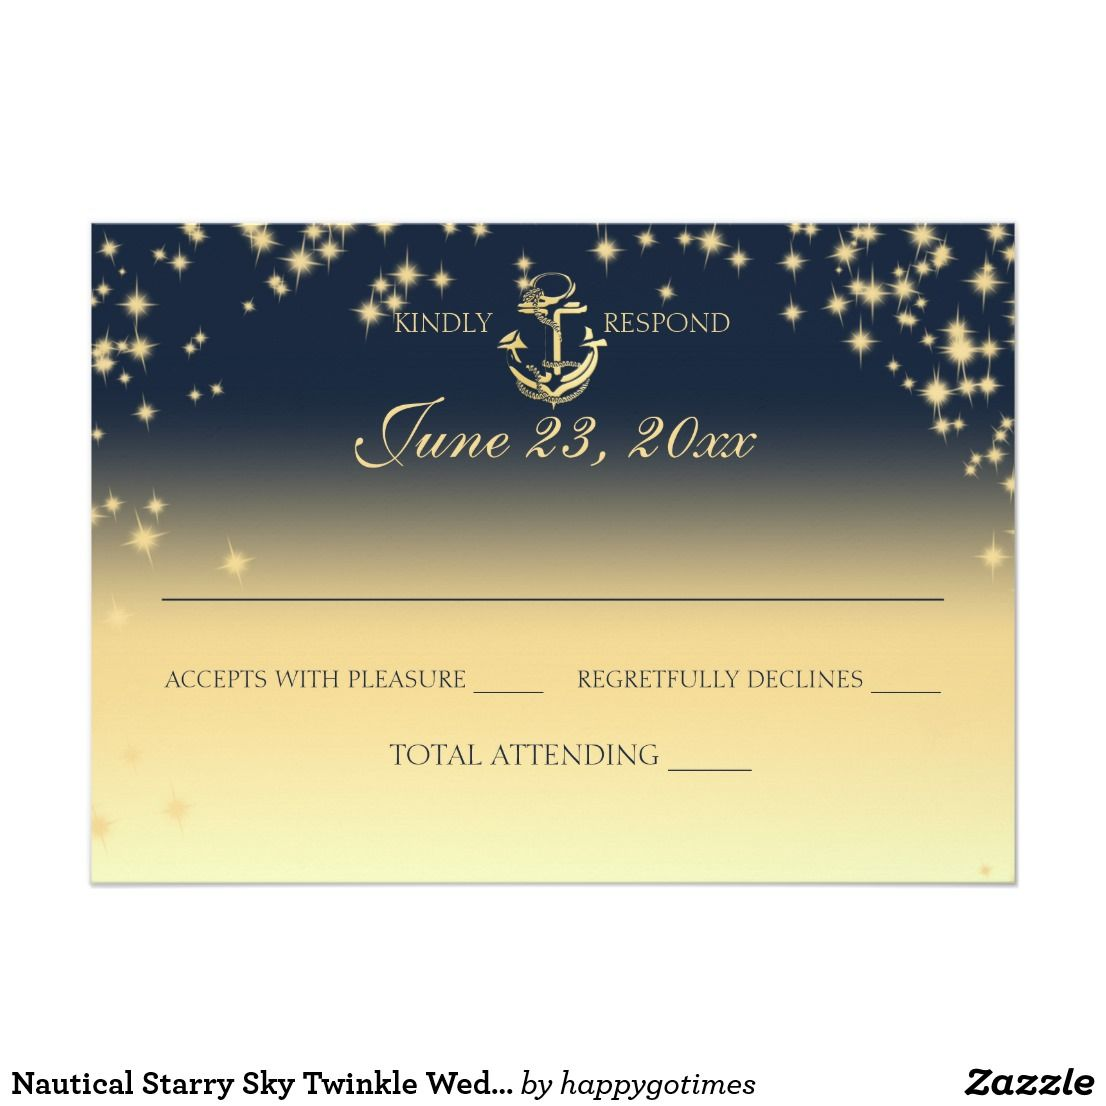 Nautical Starry Sky Twinkle Wedding Response Card Wedding Response